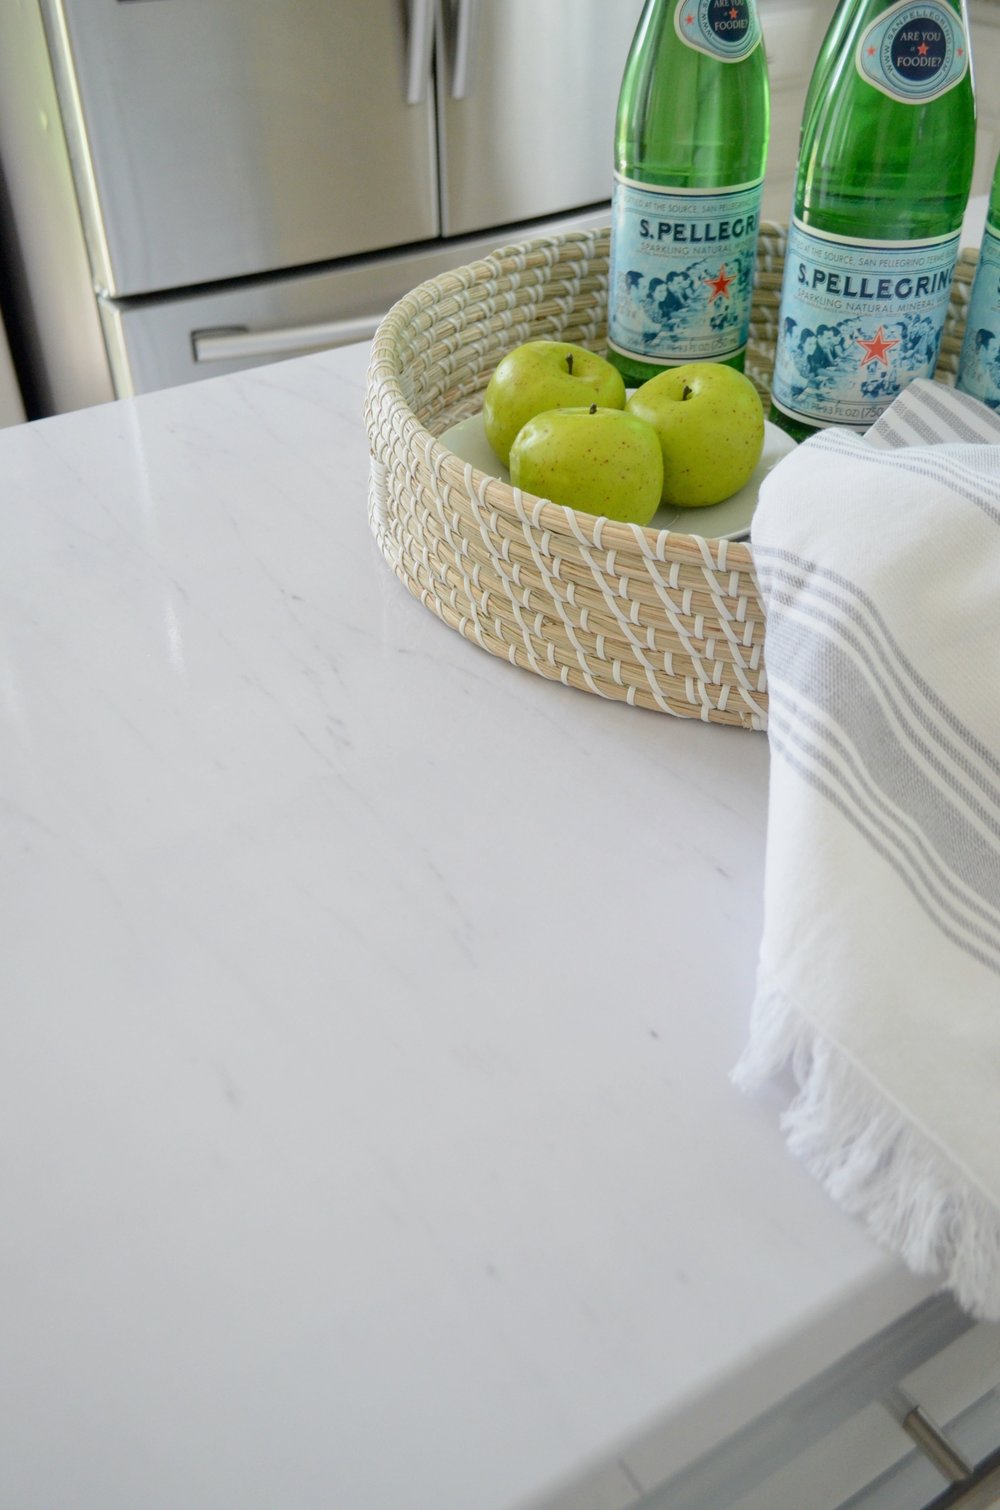 Peel and stick faux marble counters for under $50!